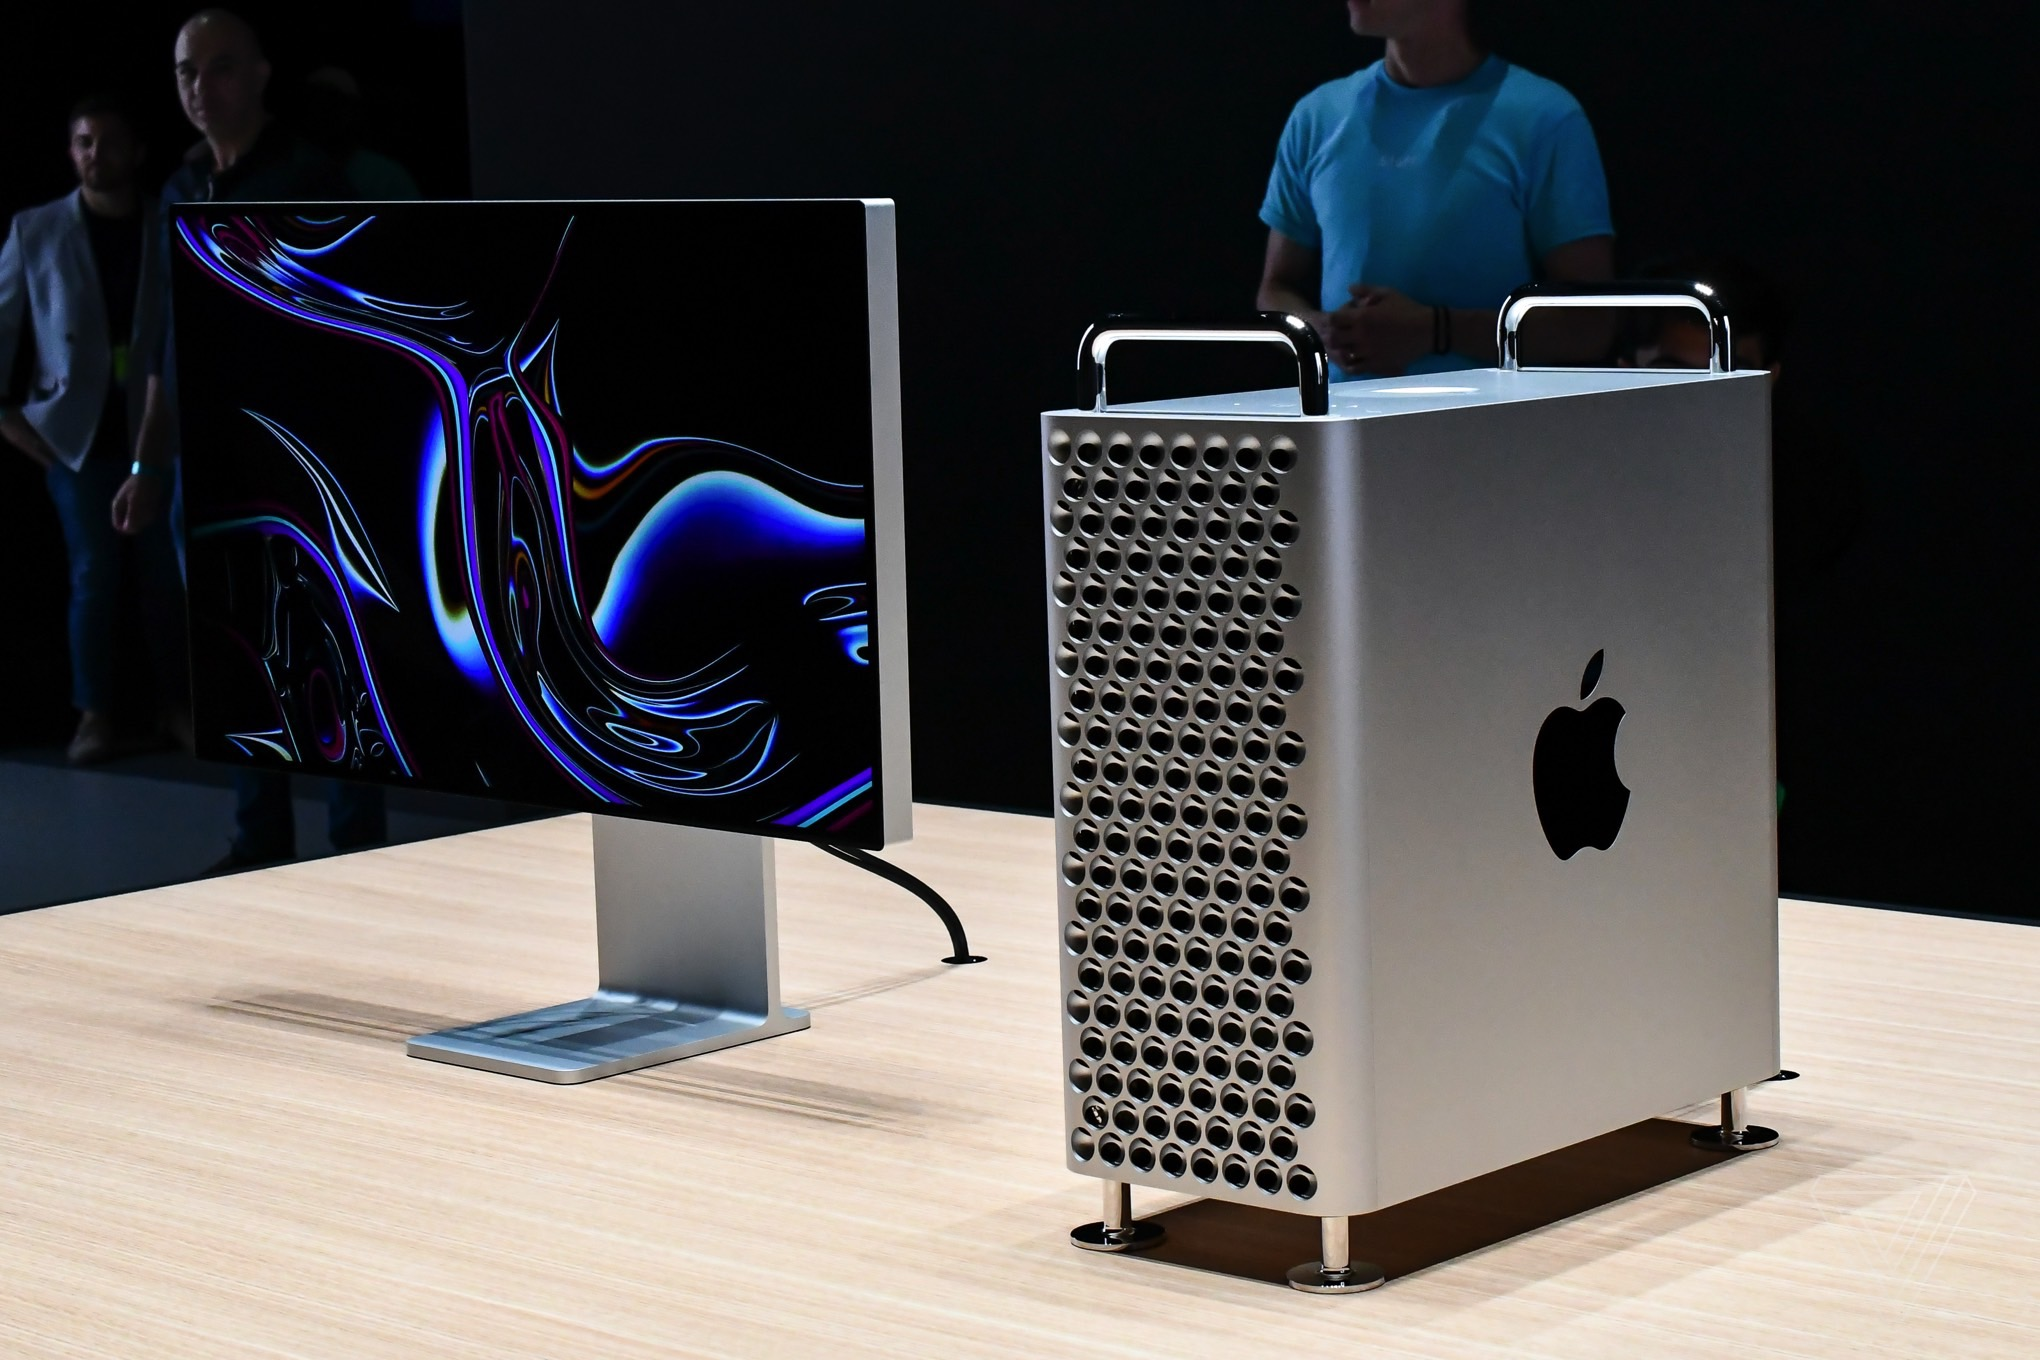 First look: the new Mac Pro is the shiny, expensive powerhouse that